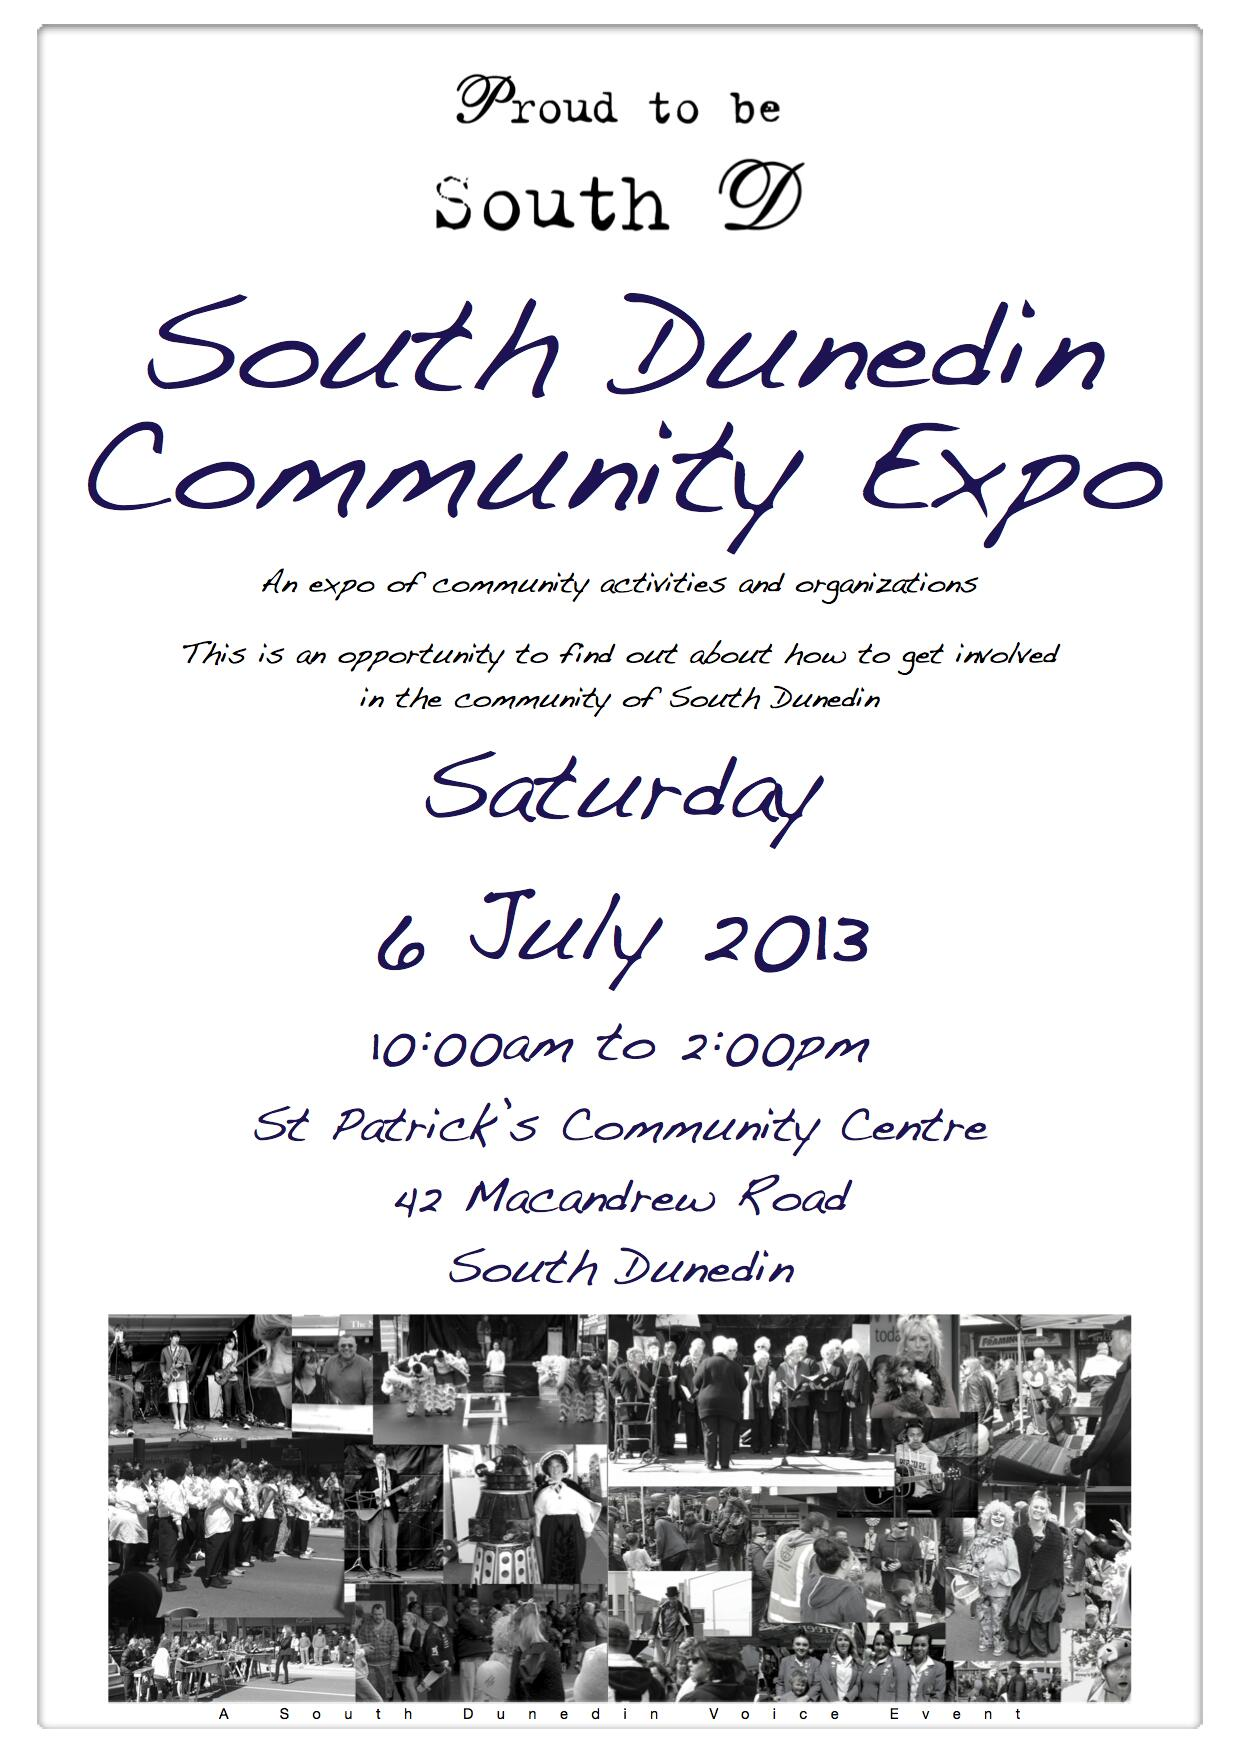 South Dunedin Community Expo